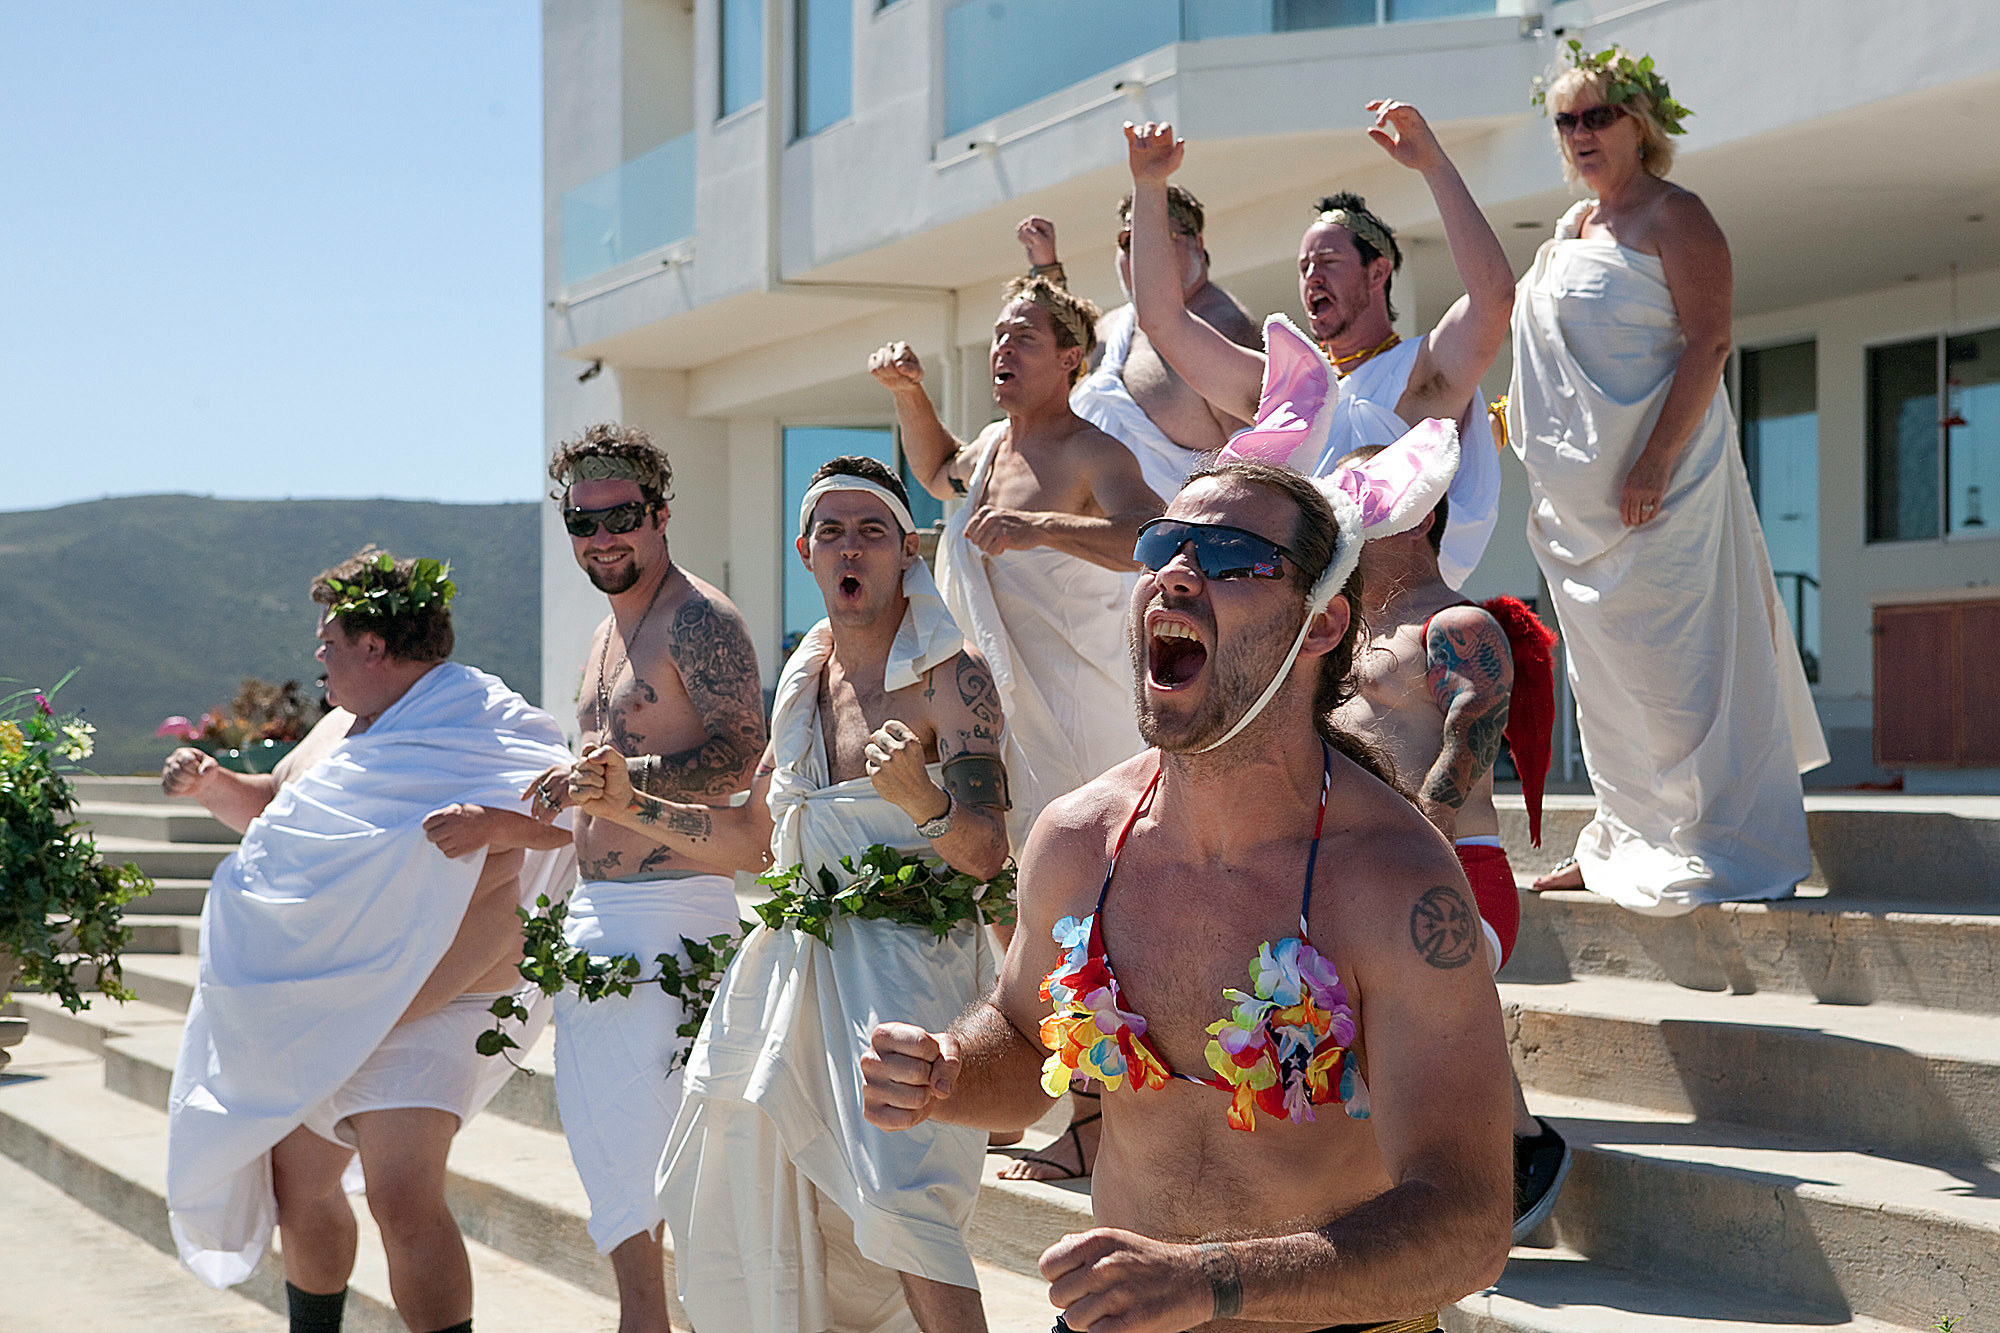 The crew of Jackass at a toga party